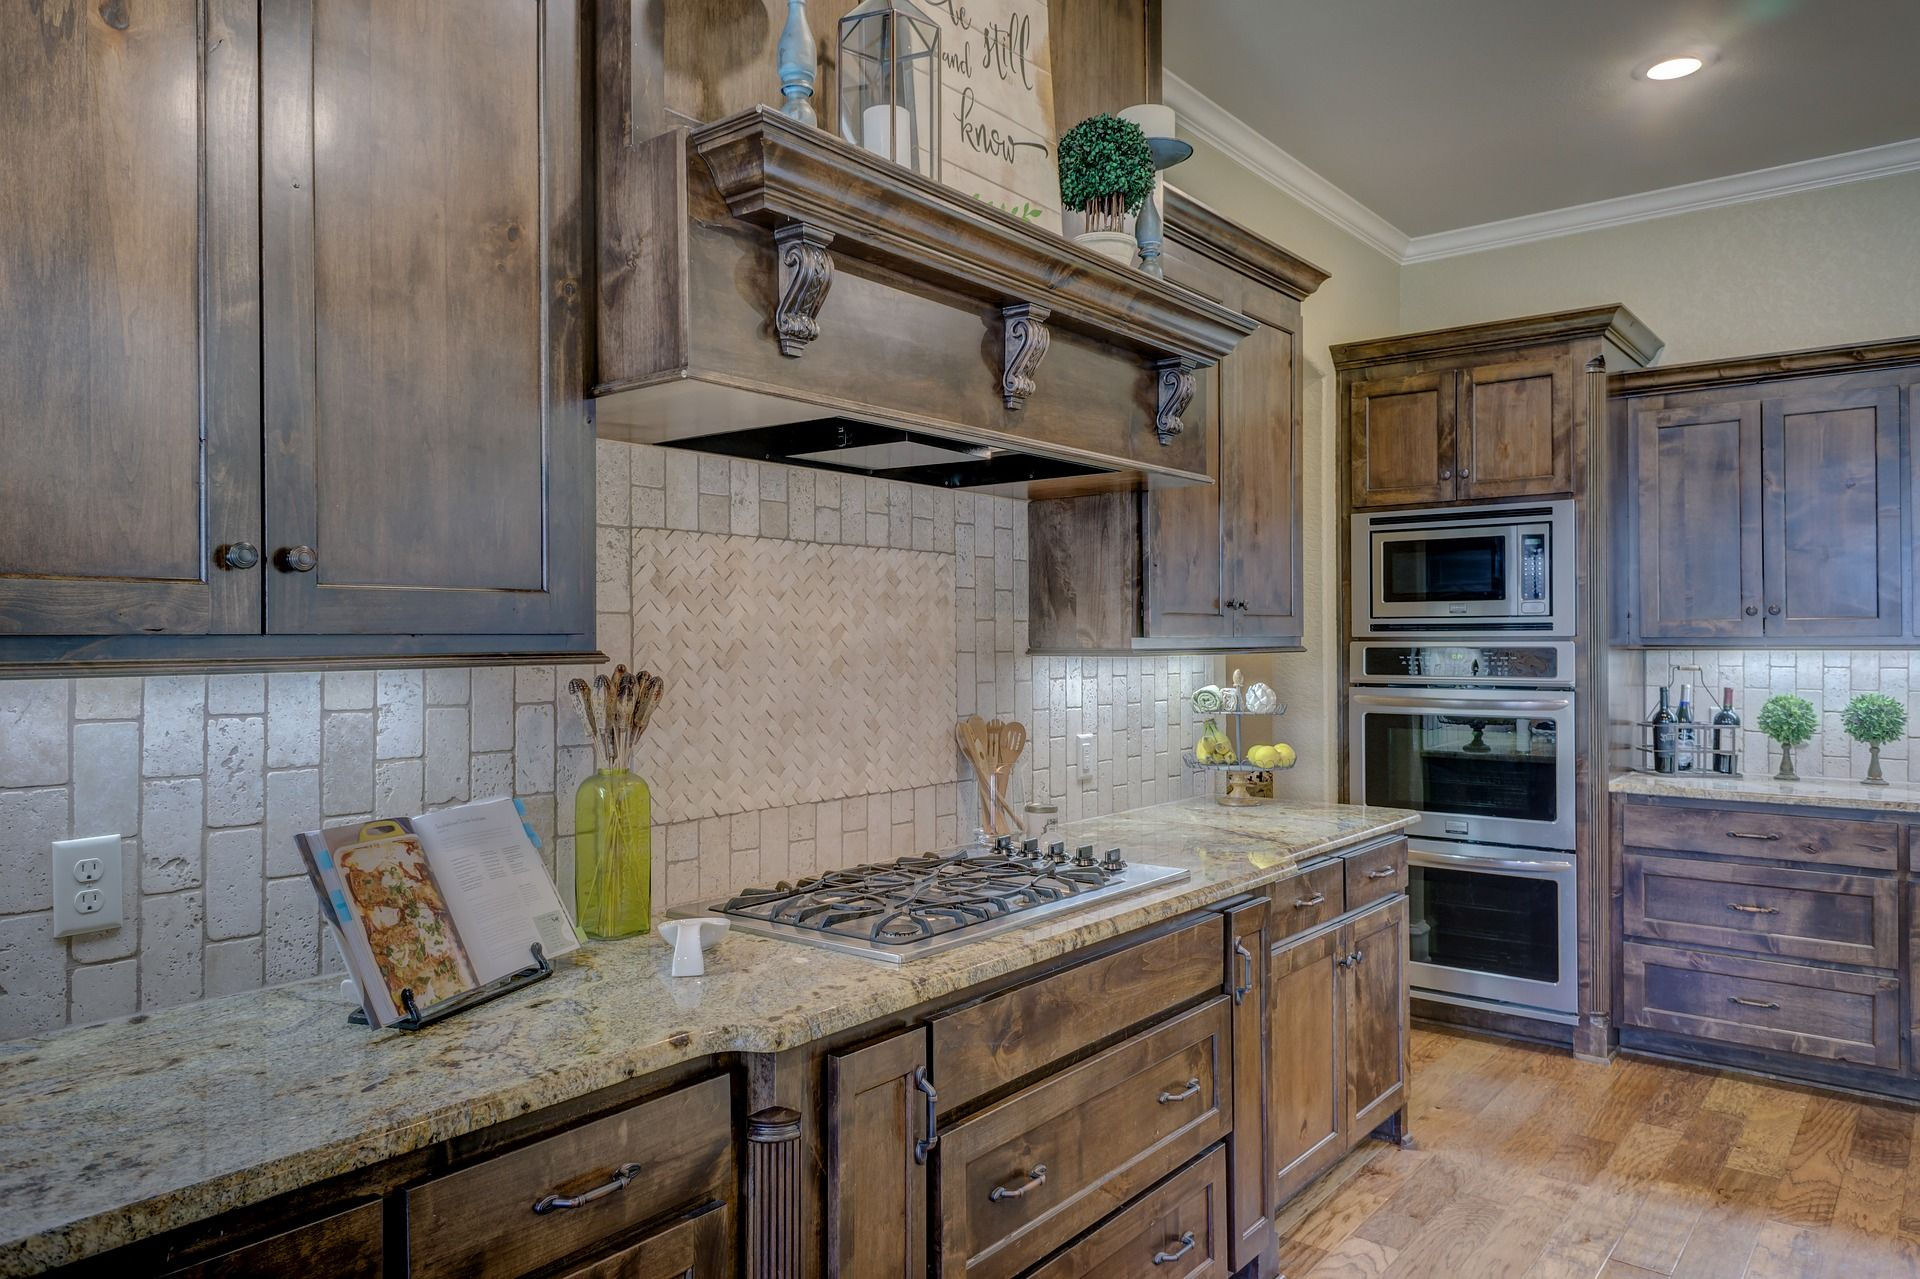 Choosing a Kitchen Backsplash - featured image